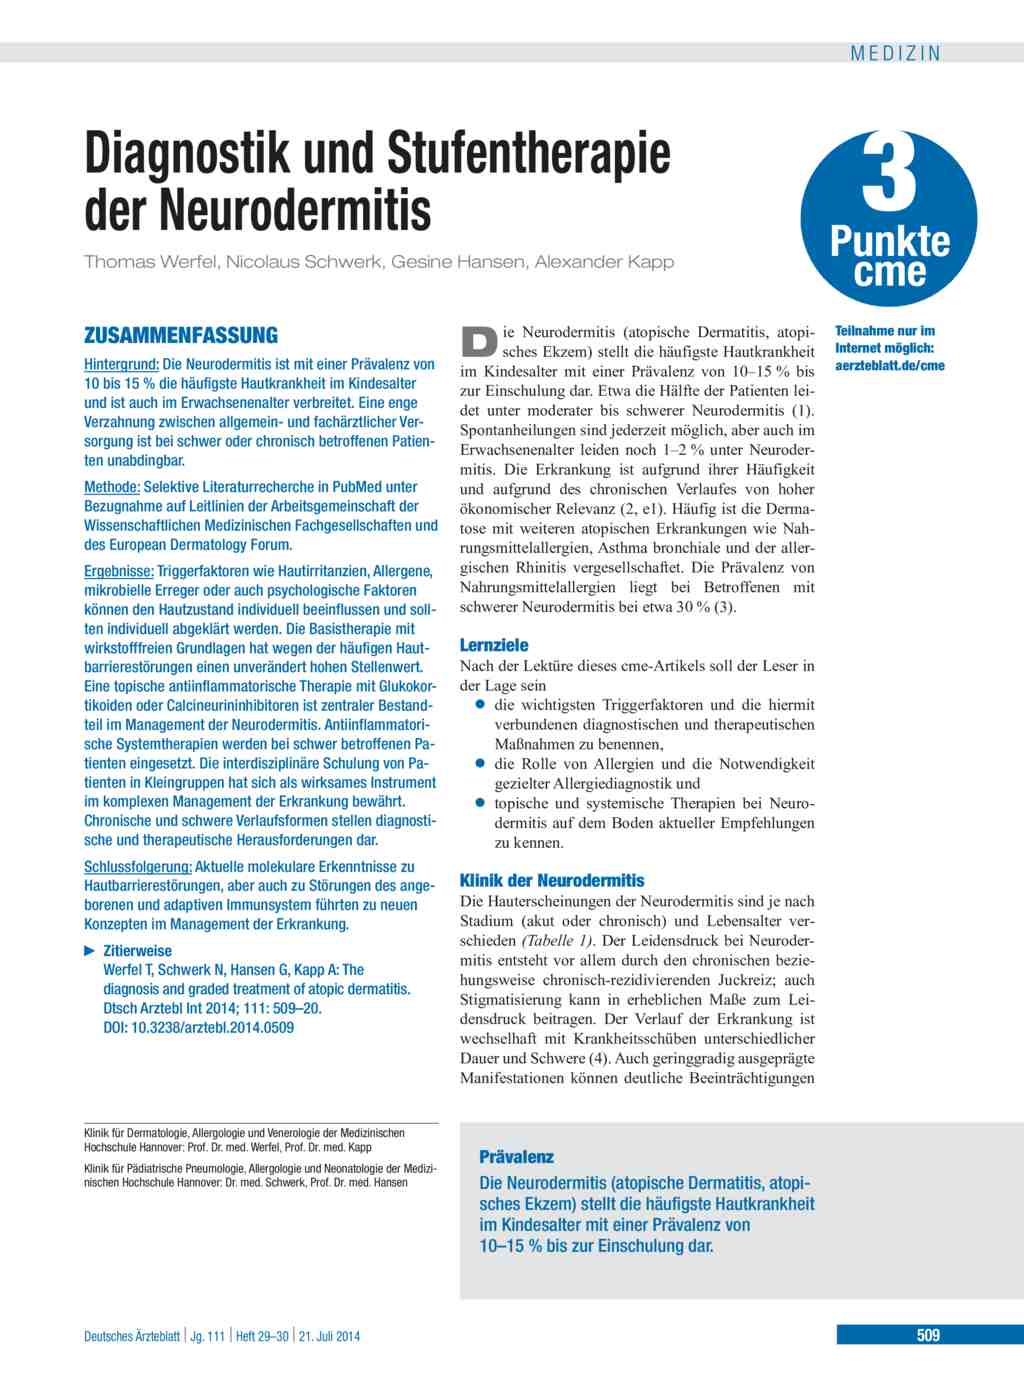 Diagnostik und Stufentherapie der Neurodermitis